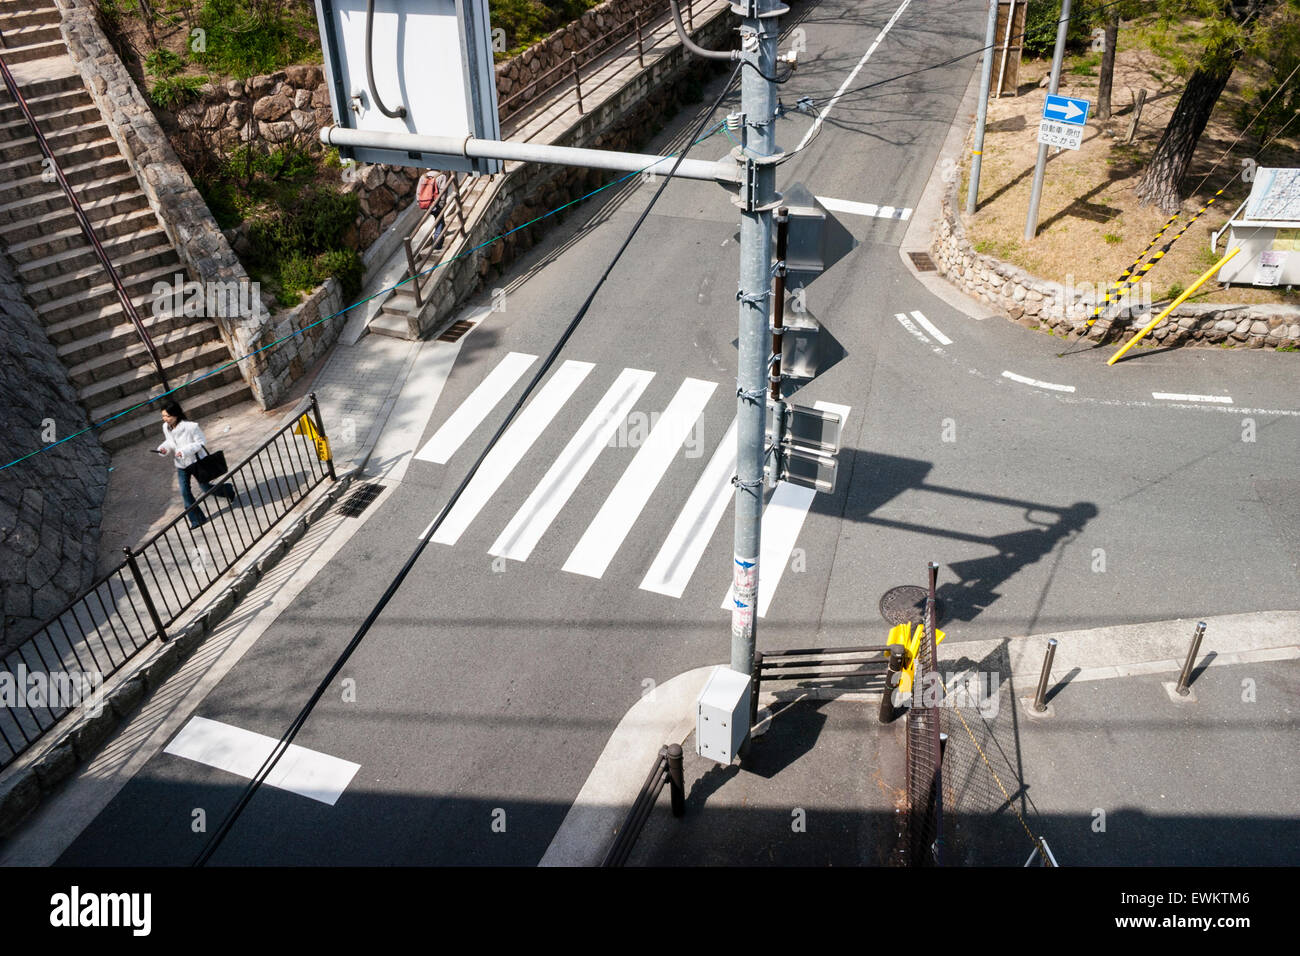 Japan, Shukugawa. Absurd pedestrian crossing that starts from one side of road and ends in middle of oncoming road - Stock Image